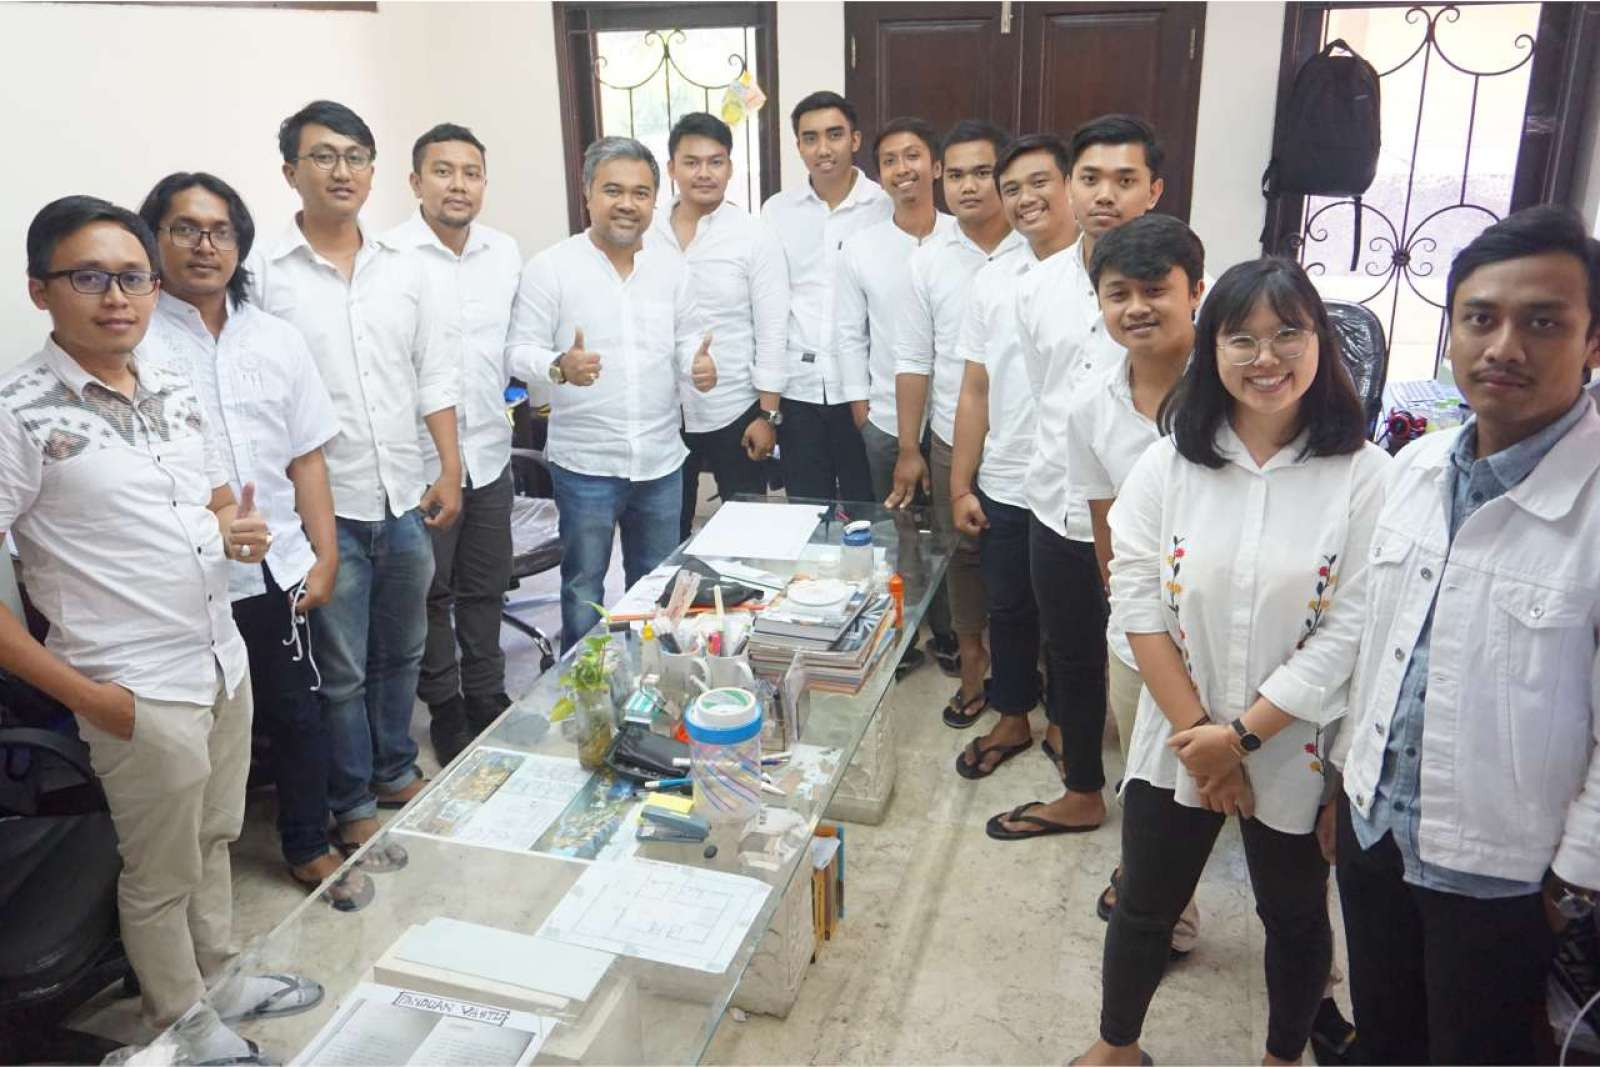 Photo with the Emporio Bali Architect Team Before Working From Home Because of the COVID-19 Virus Pa 5